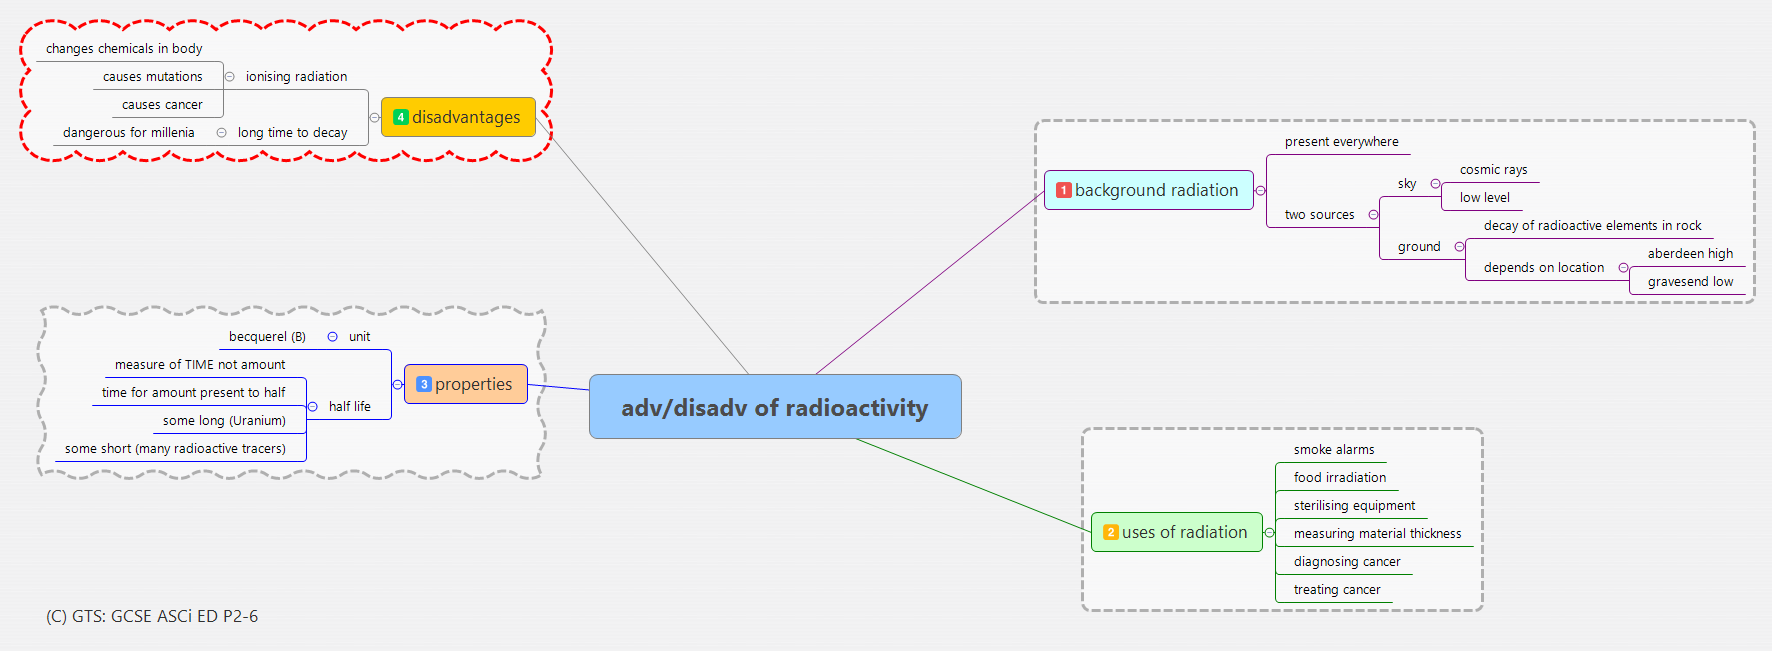 adv disadv of radioactivity